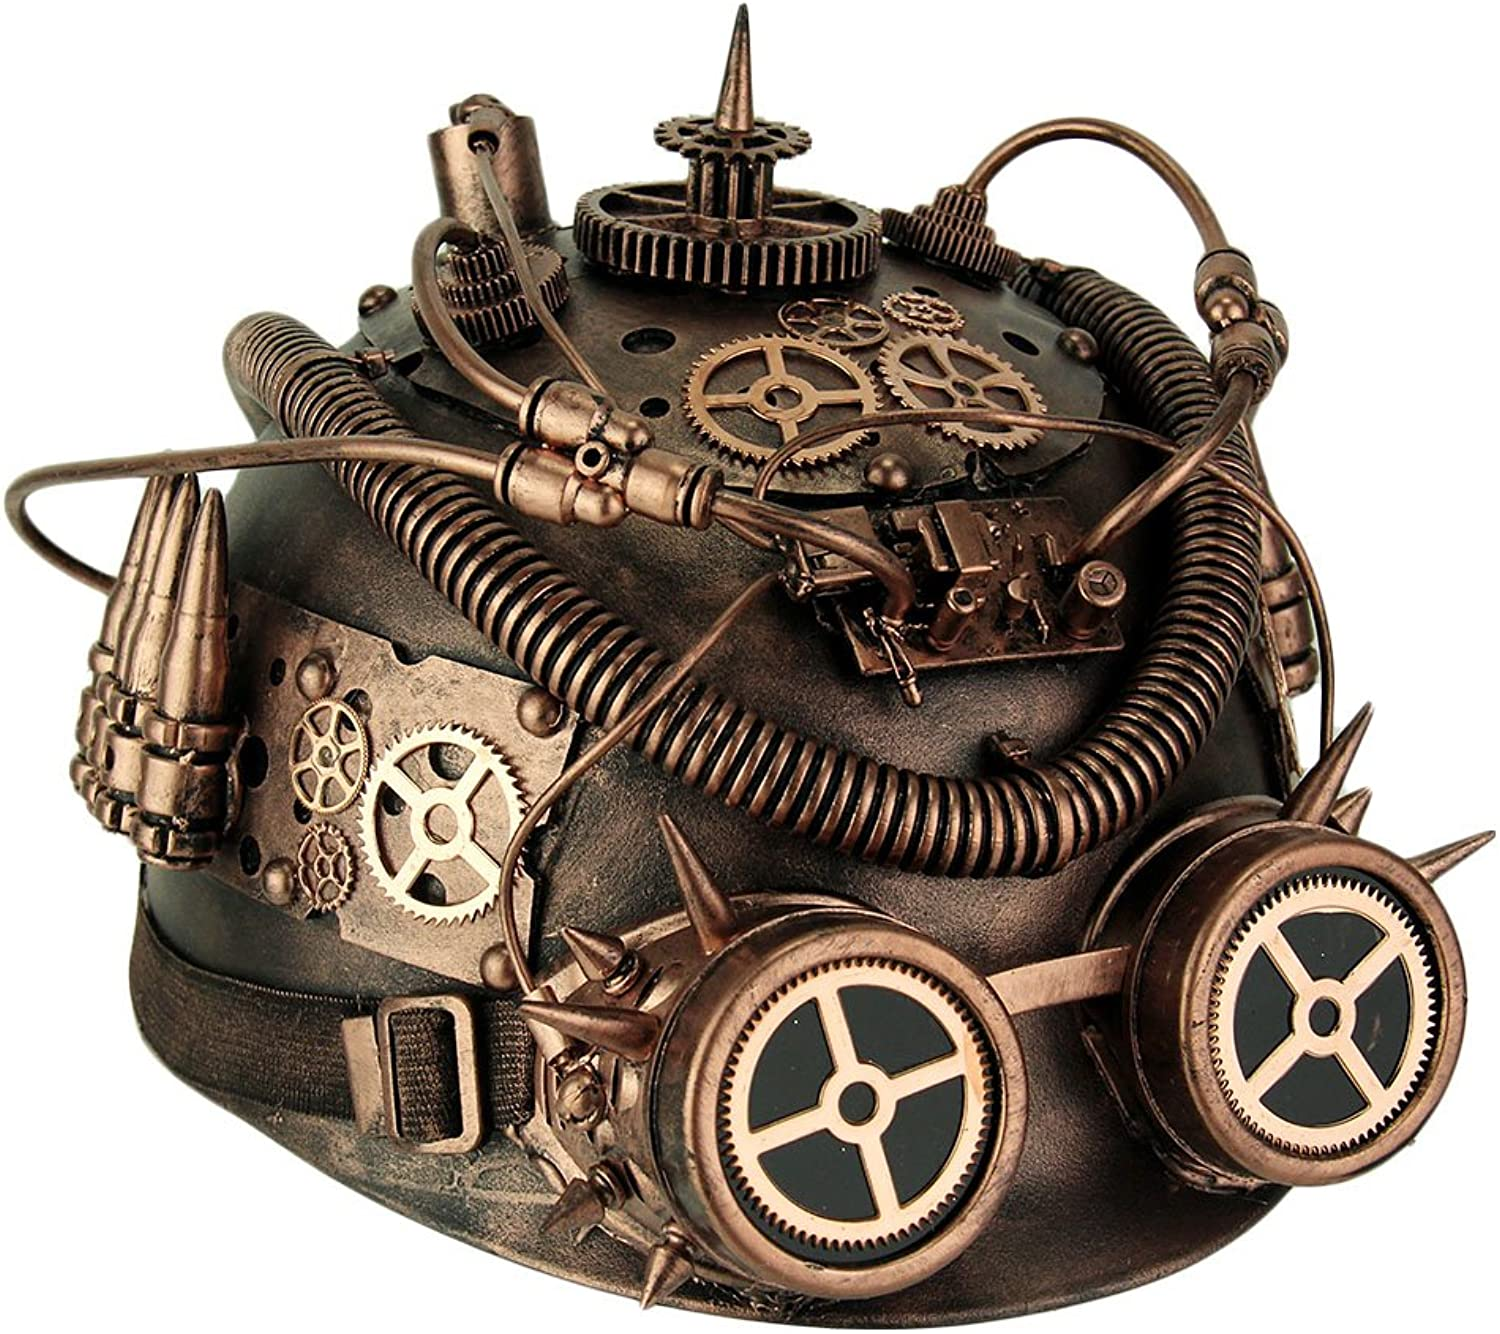 KBW Metallic Copper Spiked Steampunk Helmet with Goggles